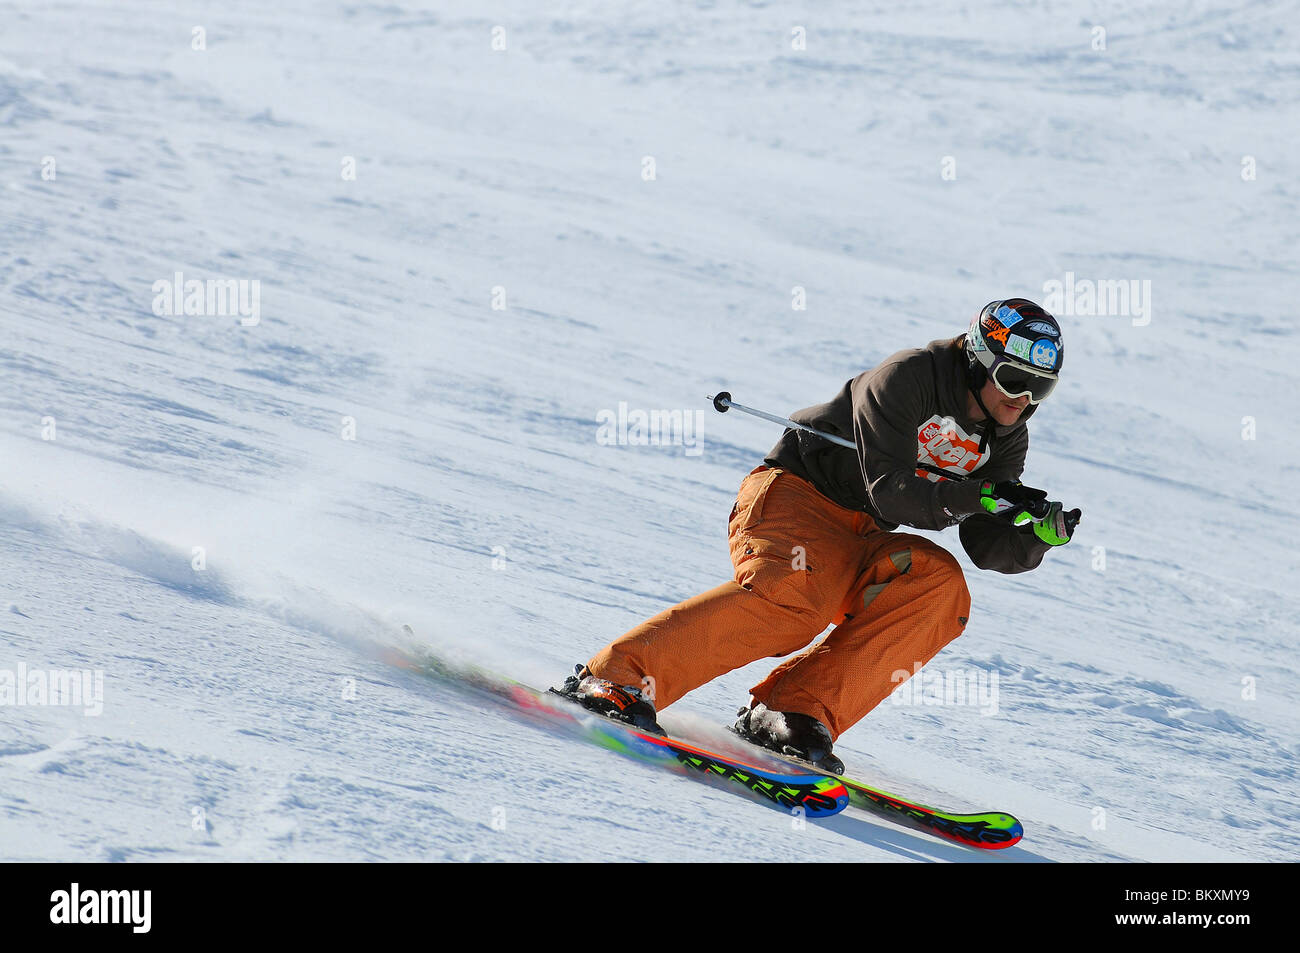 A downhill skier at speed on piste in Courchevel in the French Alps - Stock Image